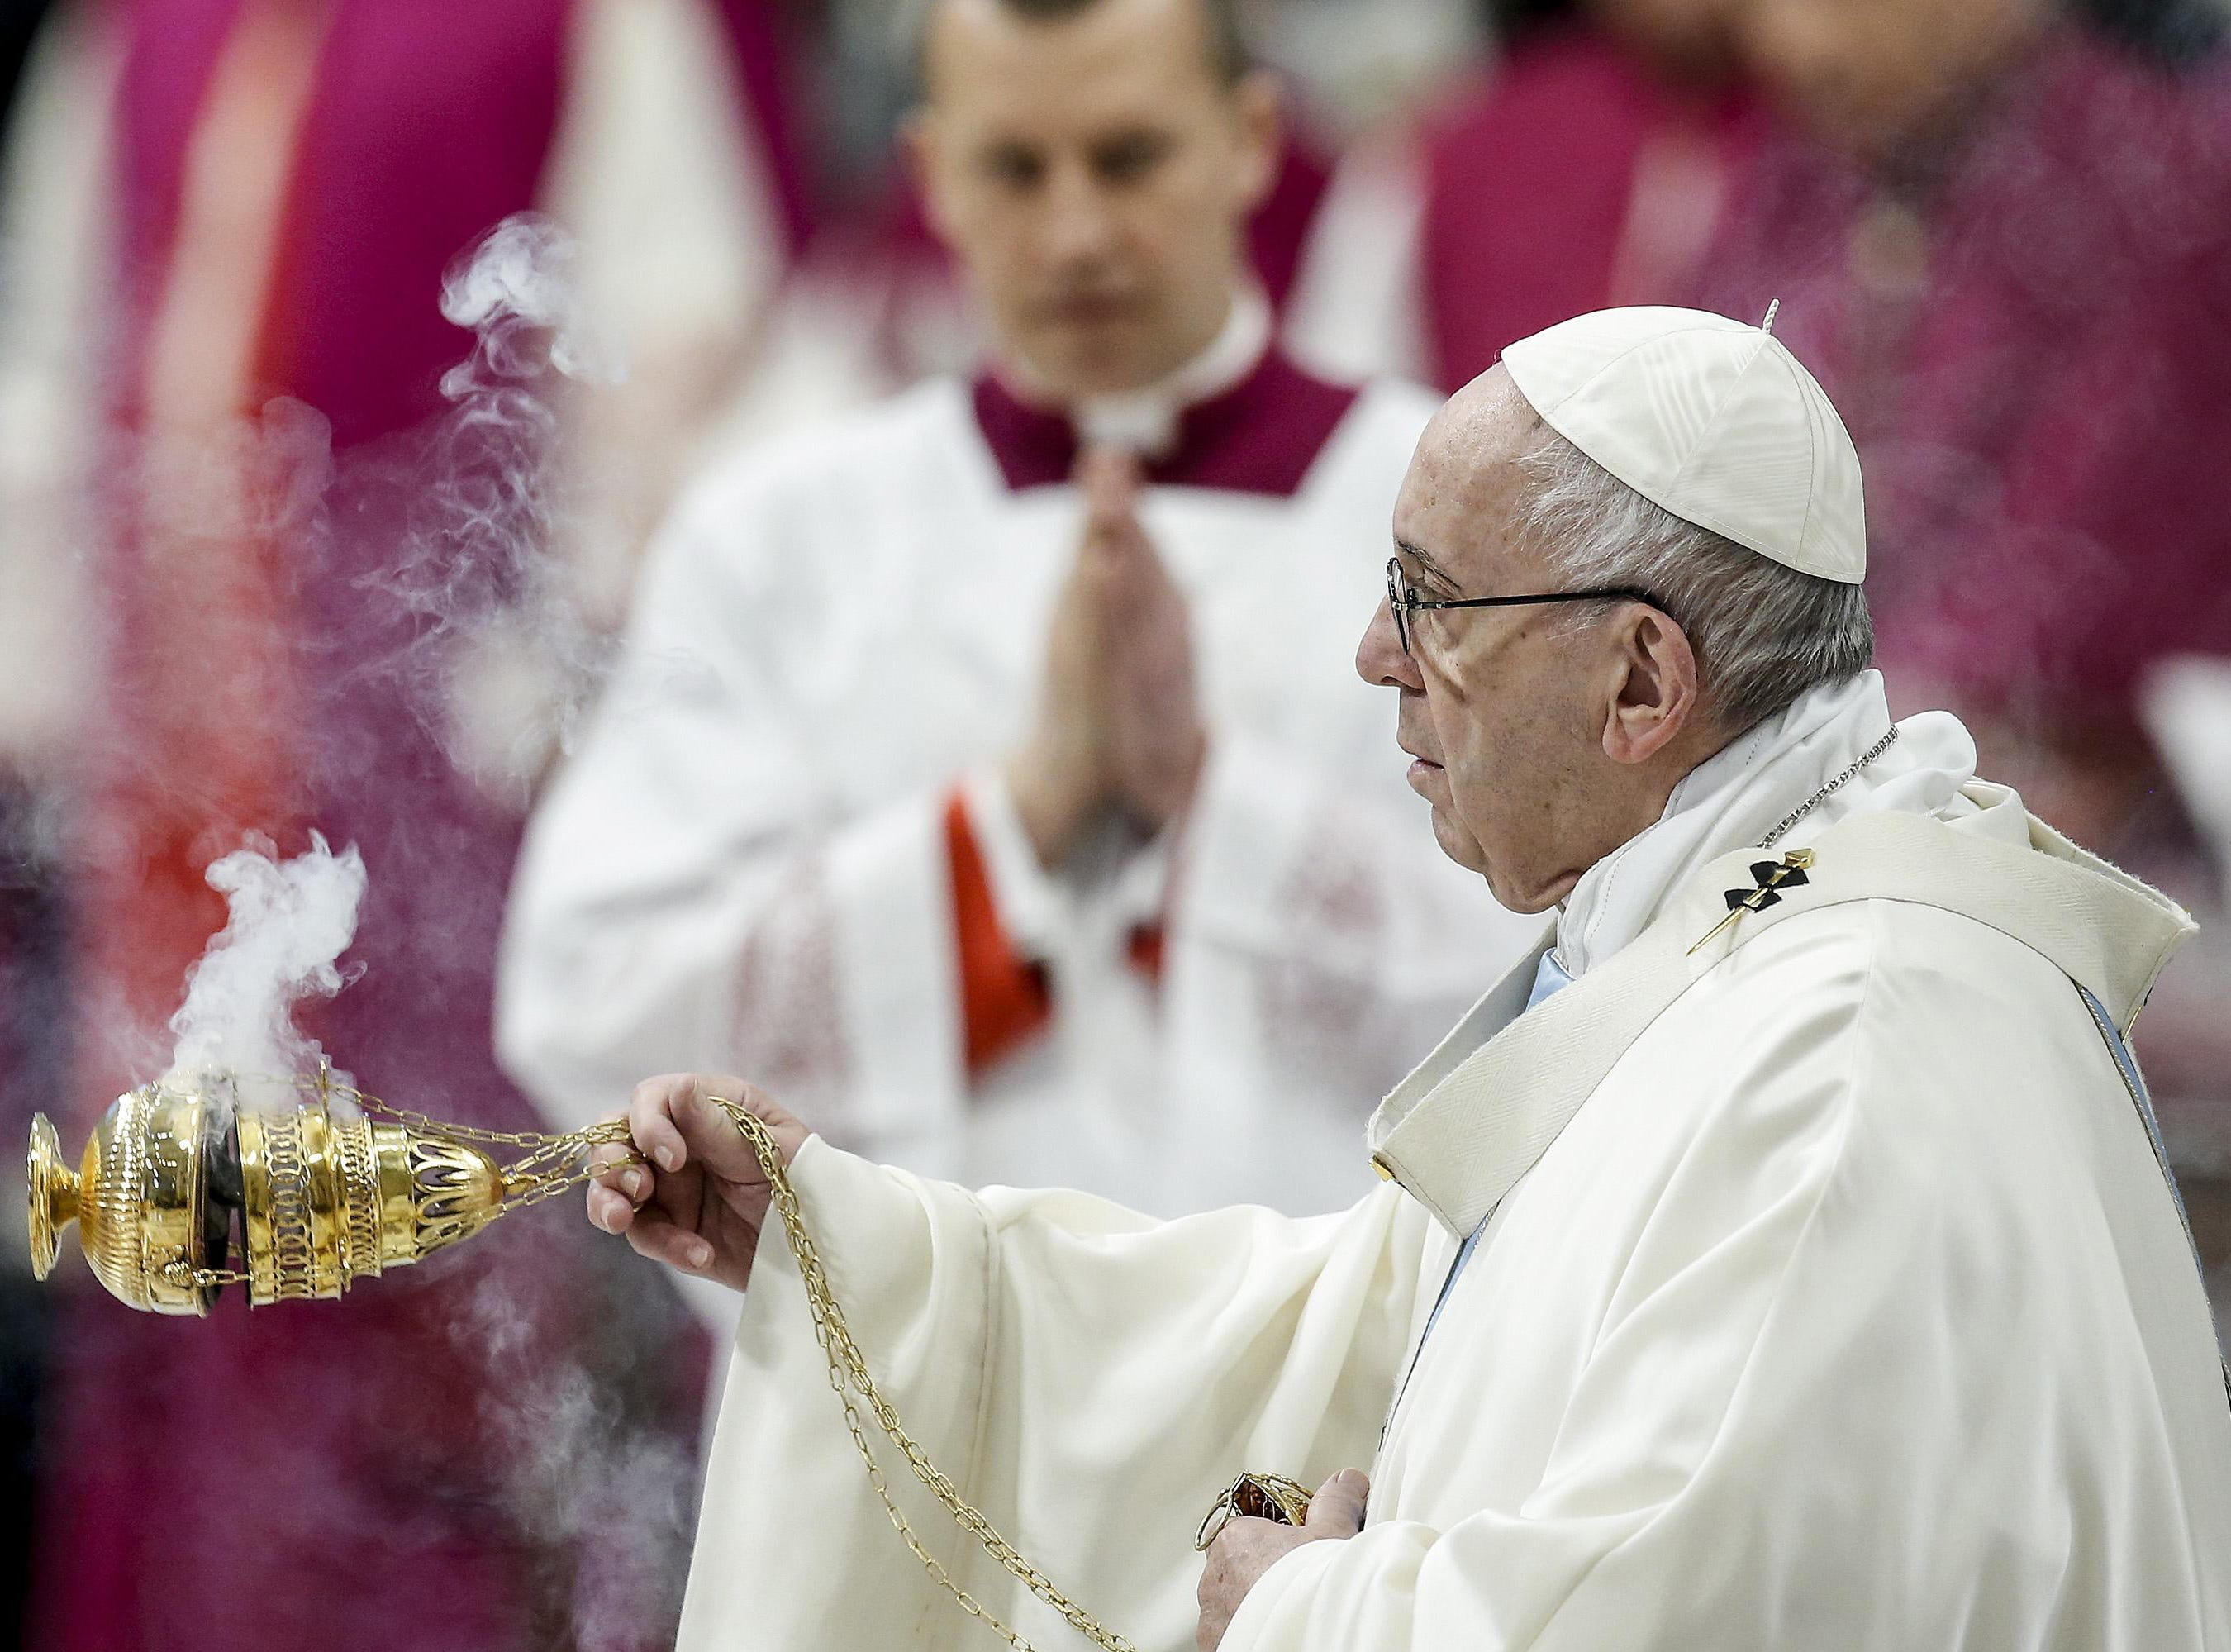 Pope Francis celebrates the Mass of the Solemnity of Mary Most Holy, on the 52st World Day of Peace in St. Peter's Basilica at the Vatican on Jan. 1, 2019.